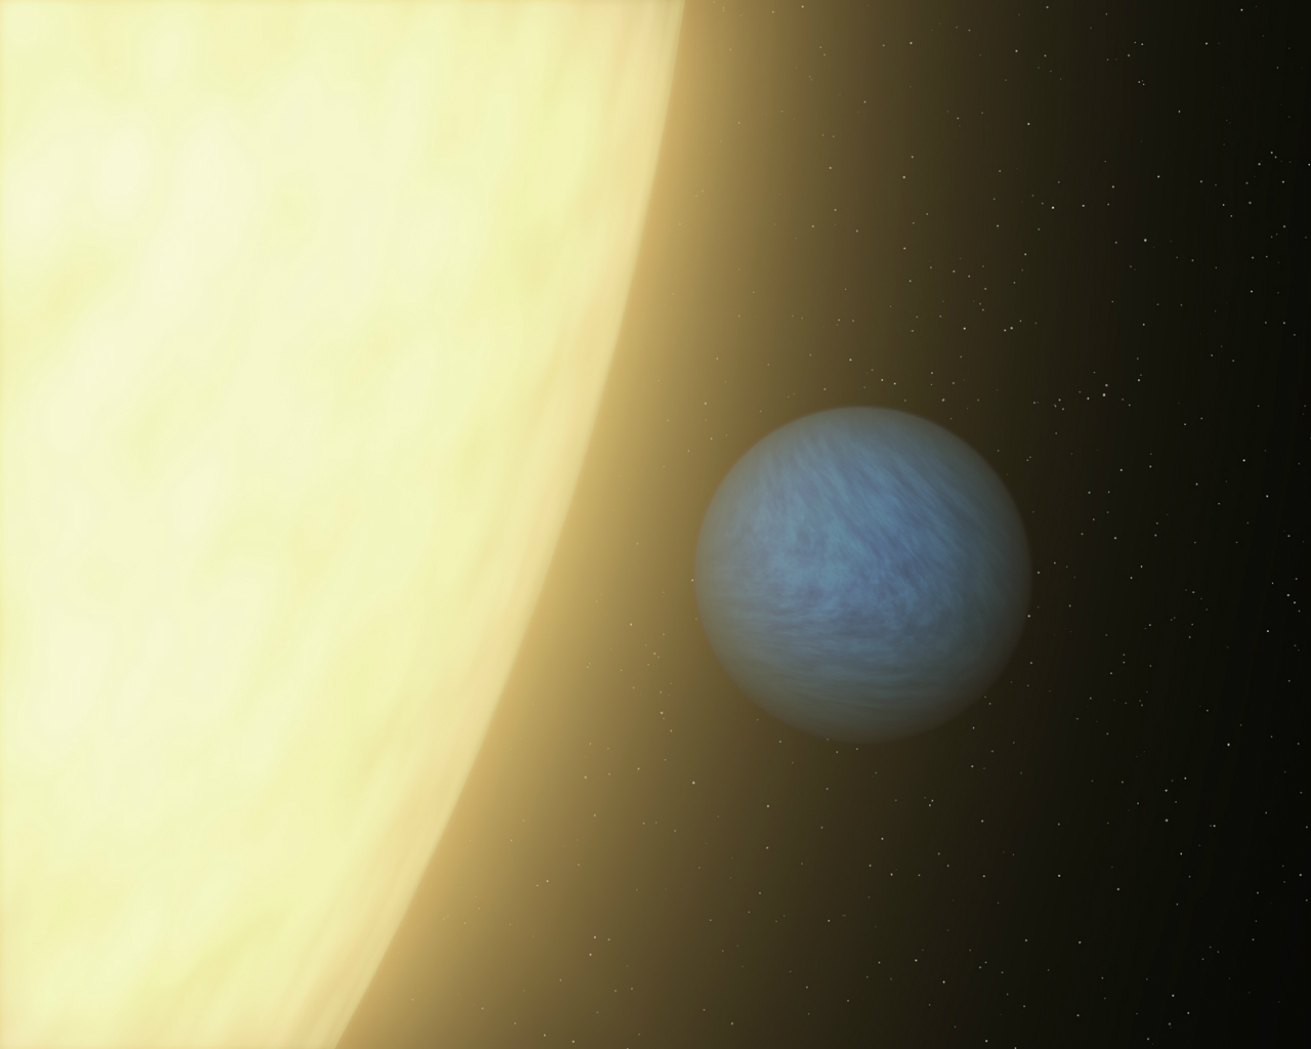 An artist's concept of super-Earth planet 55 Cancri e, which races around its host star once every 18 hours. New research led by Penn State astronomers improves our understanding of how large super-Earth planets with small, quick orbits form. Credit: NASA/JPL-Caltech